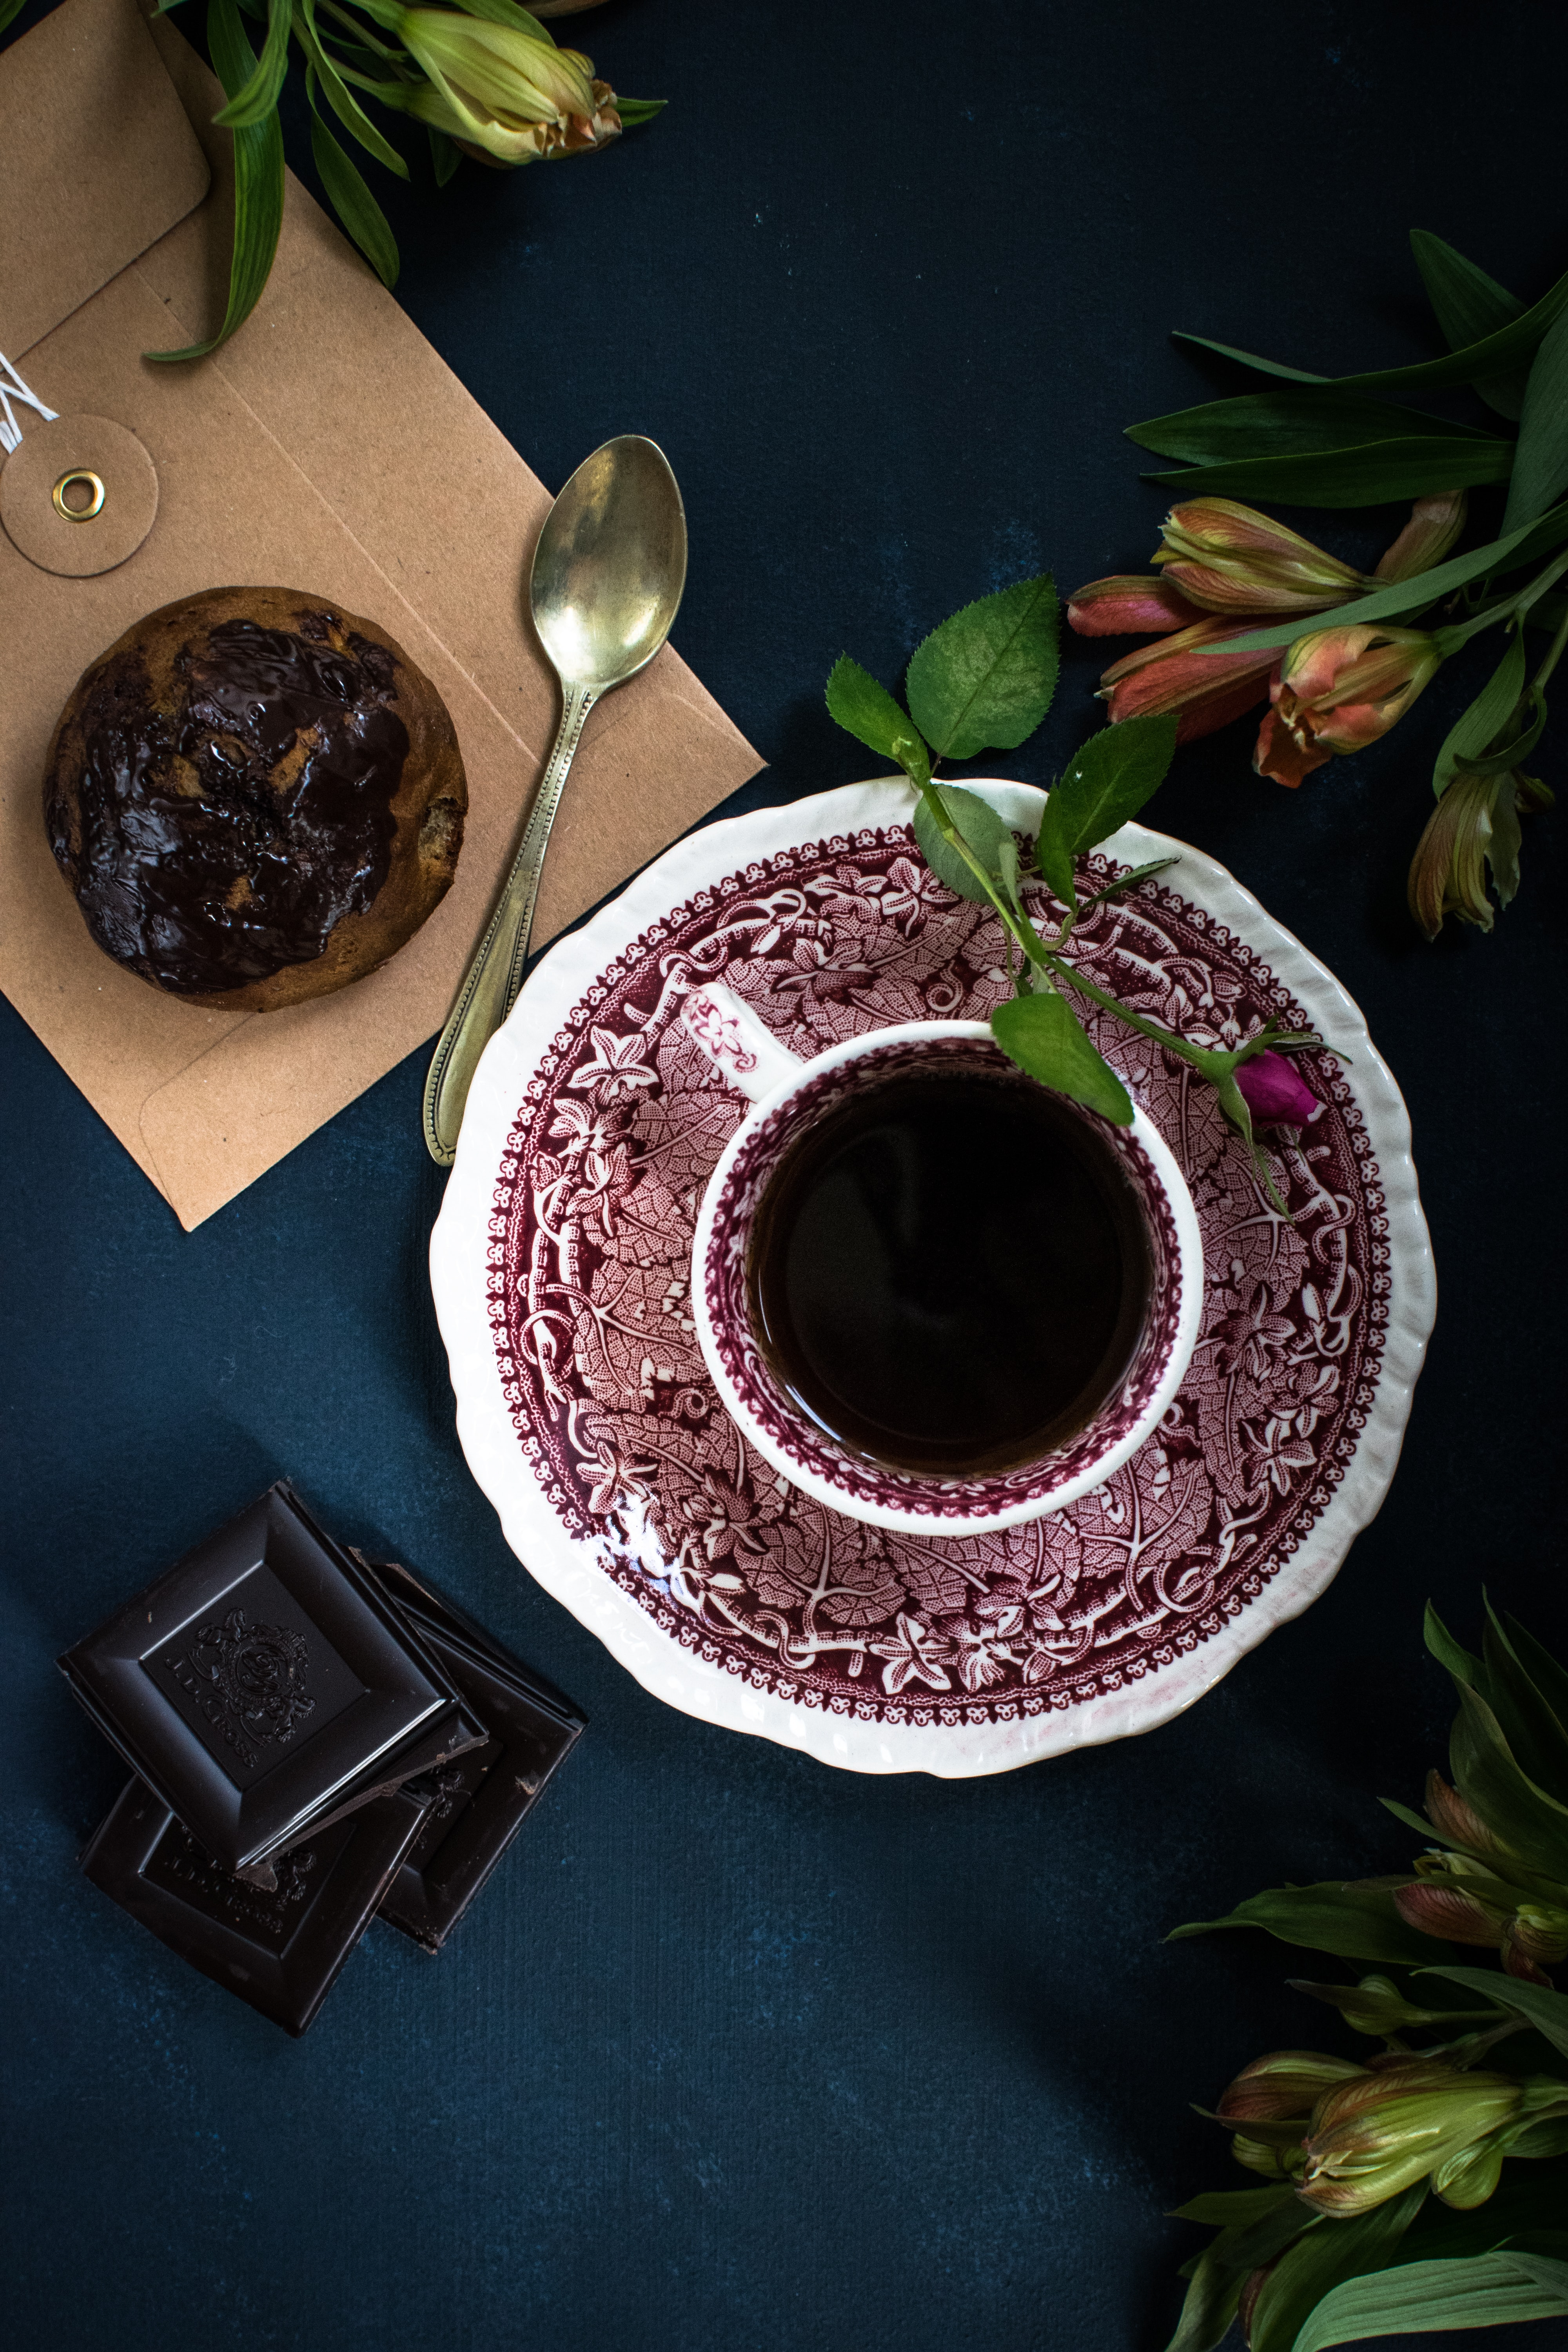 coffee served on white and red ceramic cup beside chocolate cupcake